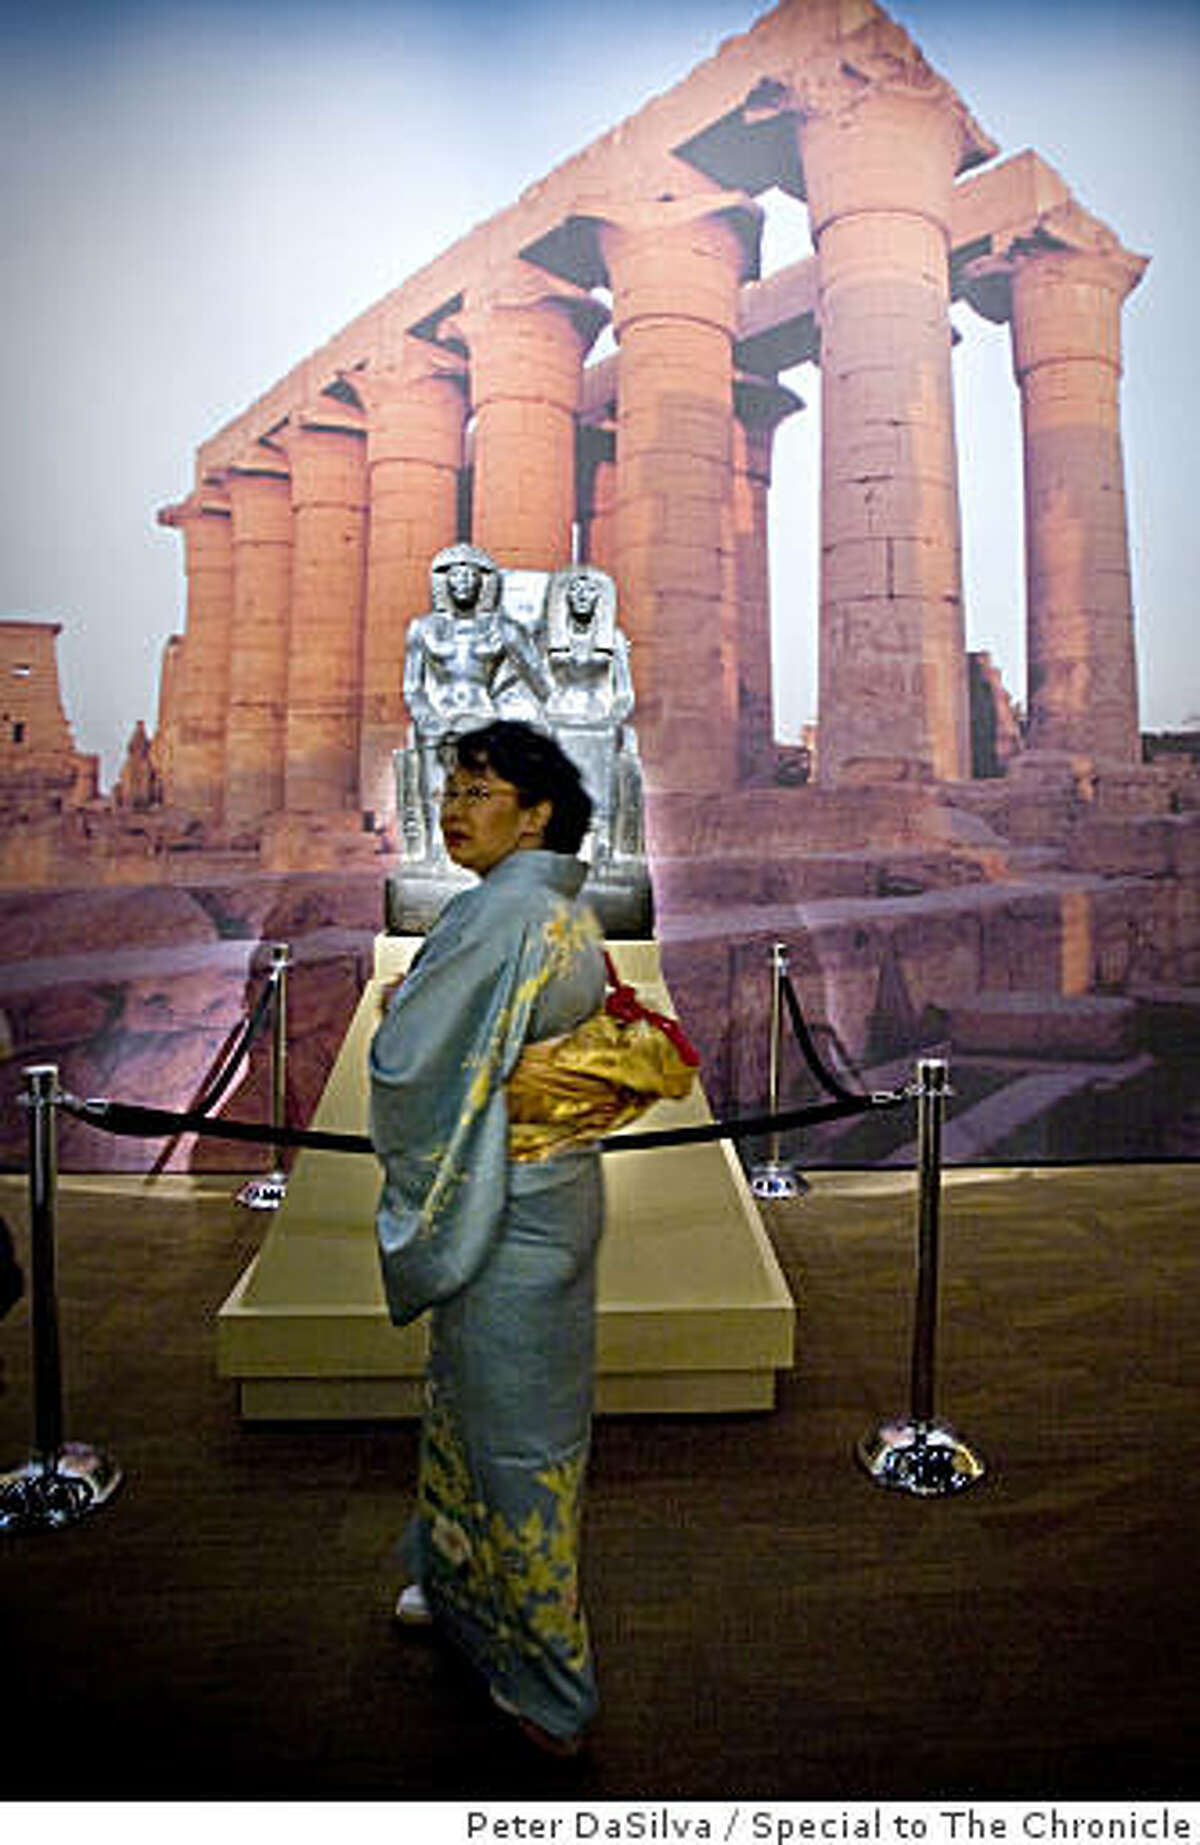 """Guest Dr. Sachiko Nishimura of the Tutankhamun and the Golden Age of the Pharaohs opening gala, glances off after looking at the """"Statue of Tuthmosis IV and His Mother, Tiaa"""" in the Tutankhamun exhibit at the de Young Museum in San Francisco, California on Jun. 23, 2009."""